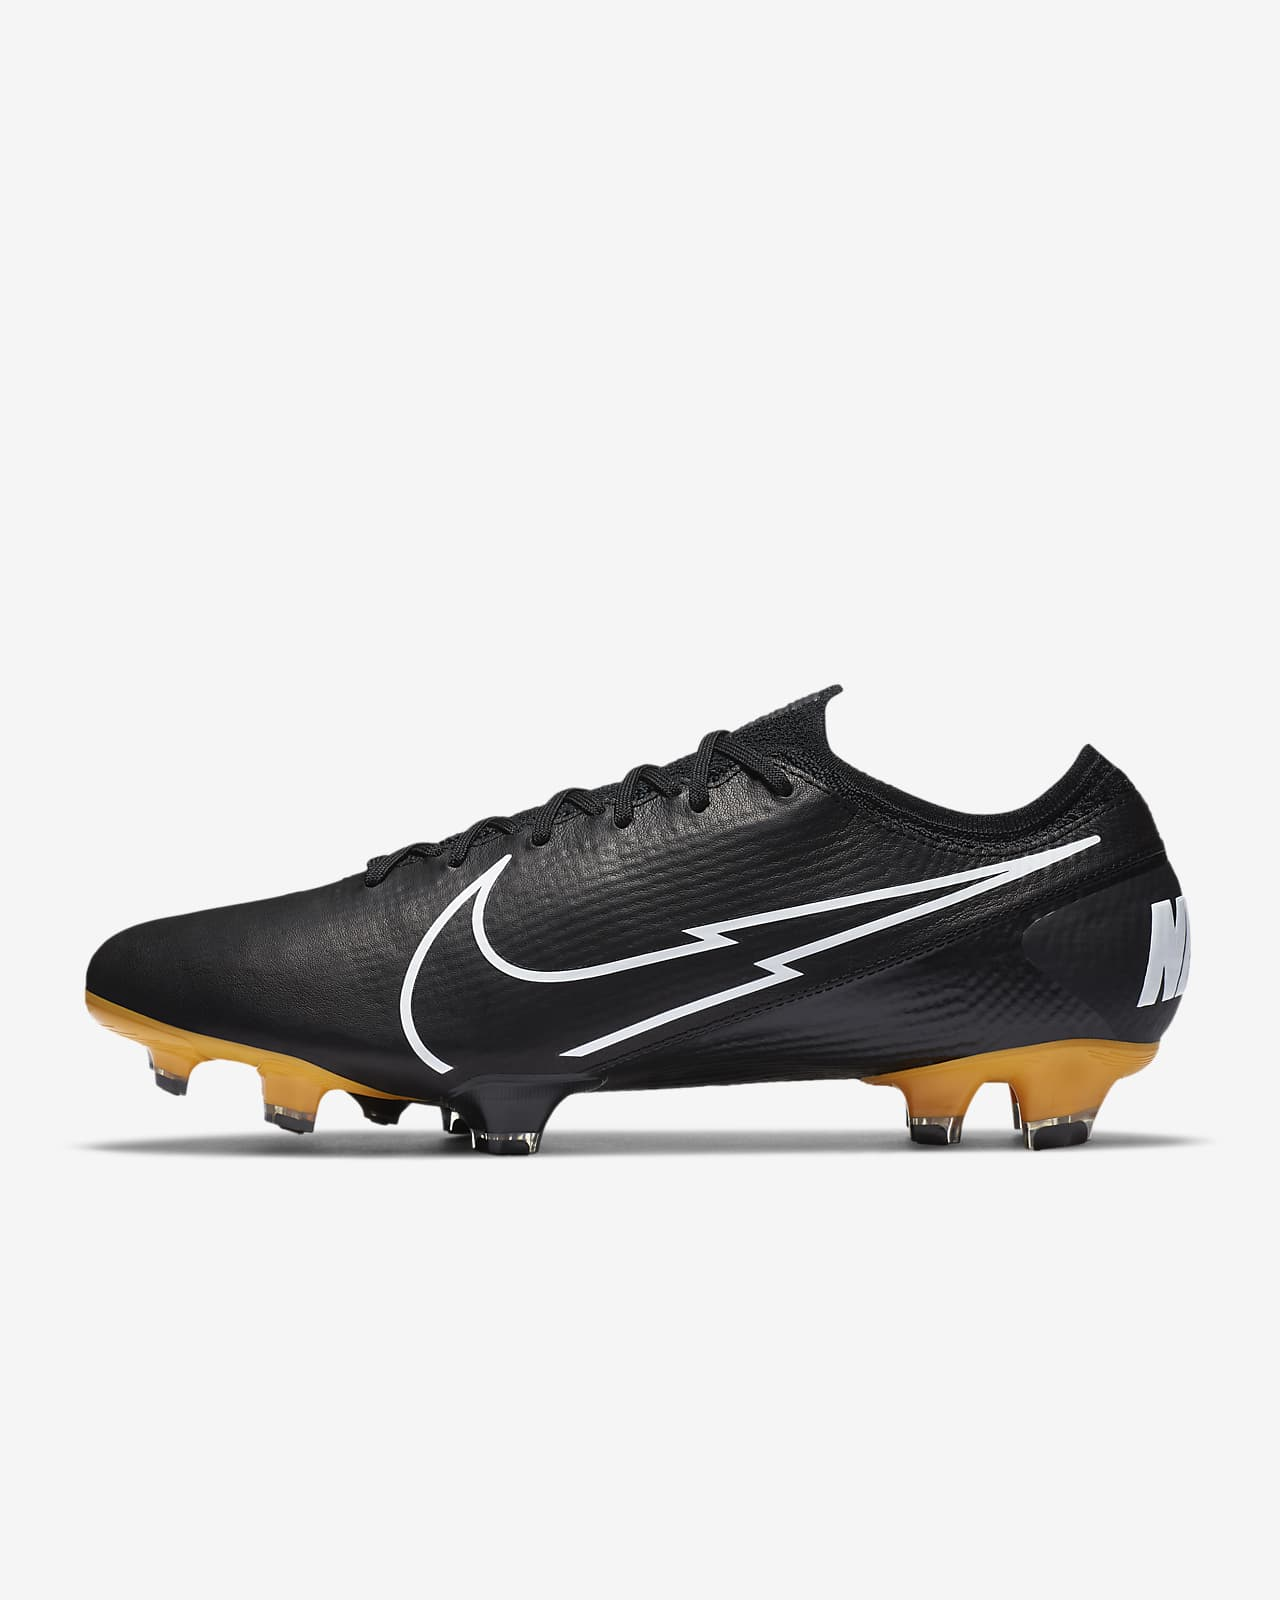 Nike Mercurial Vapor 13 Elite Tech Craft FG Firm-Ground Football Boot